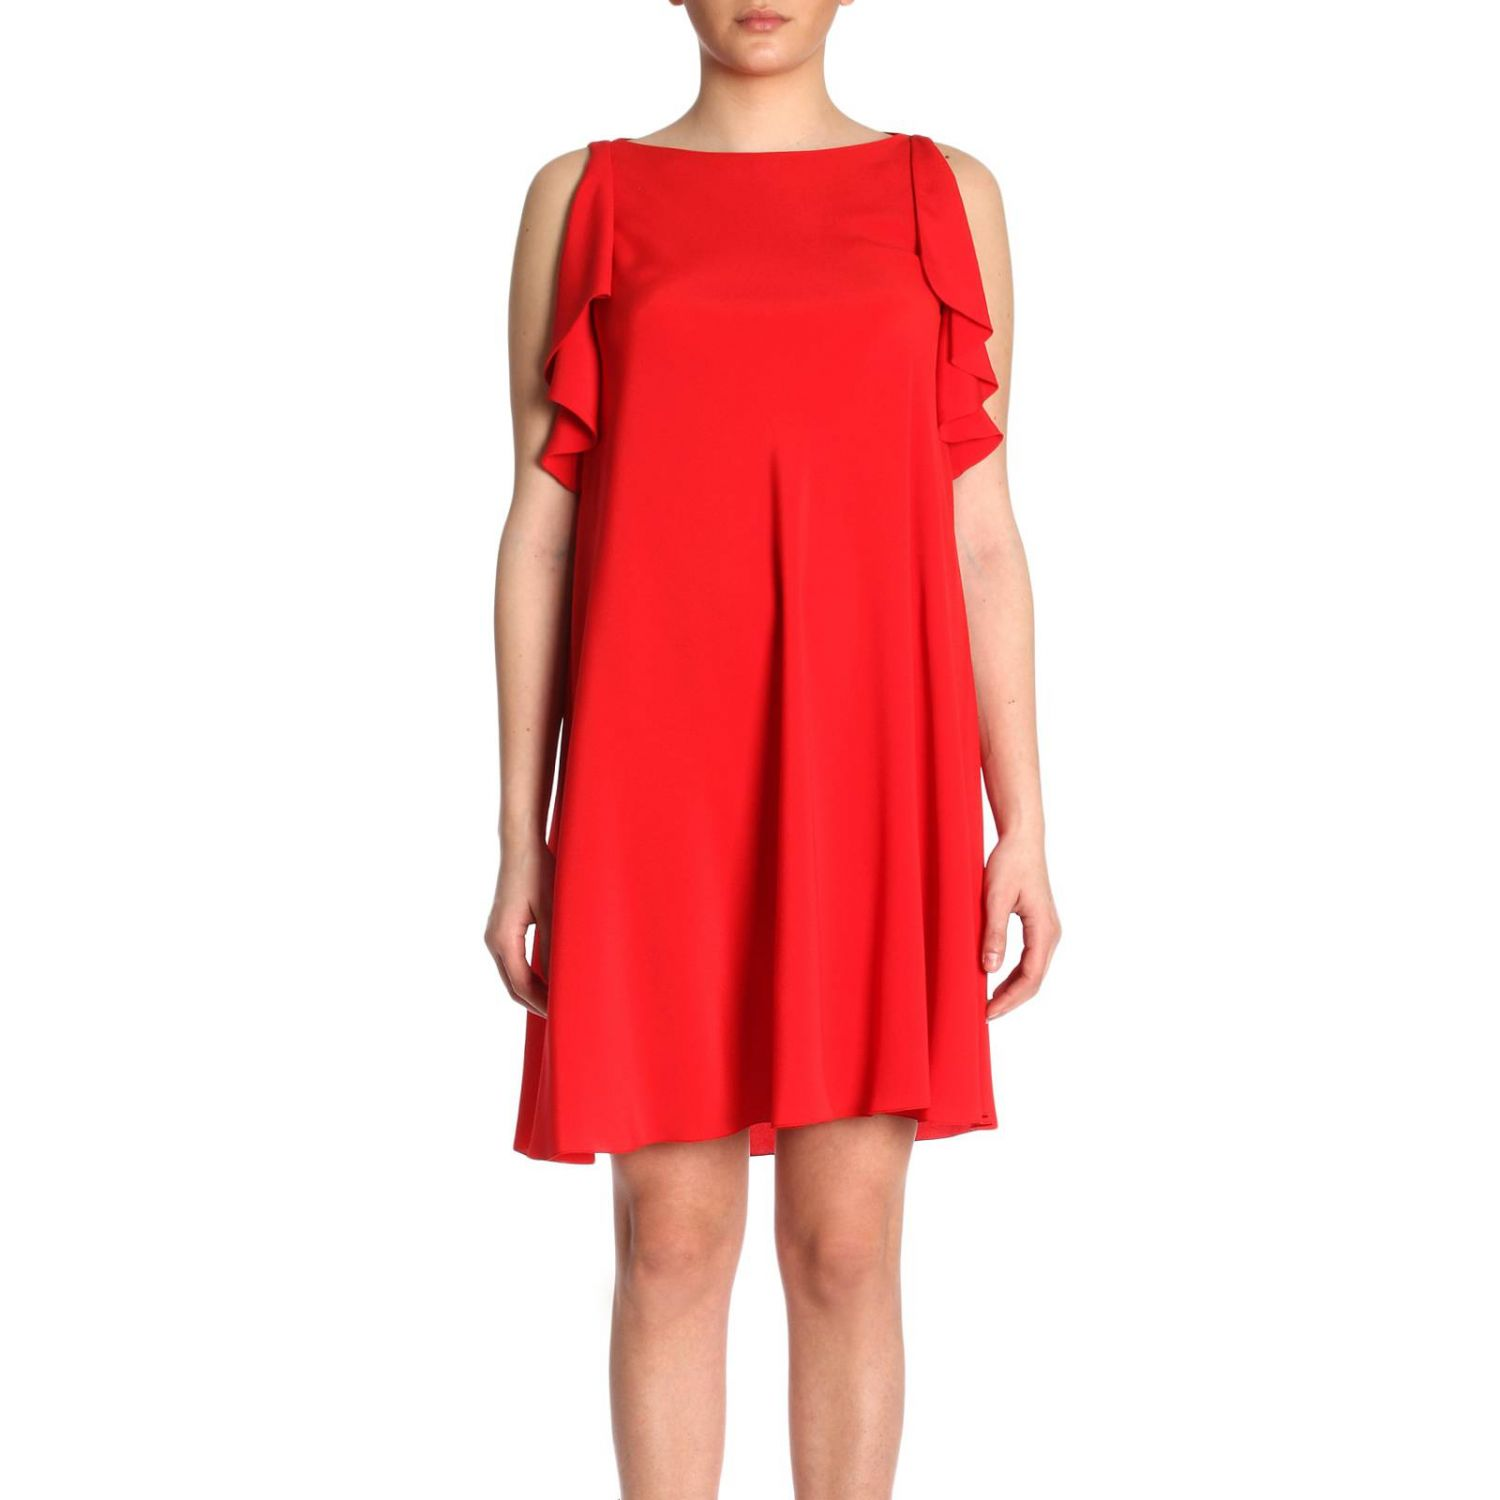 Dress Dress Women Red Valentino 8293196